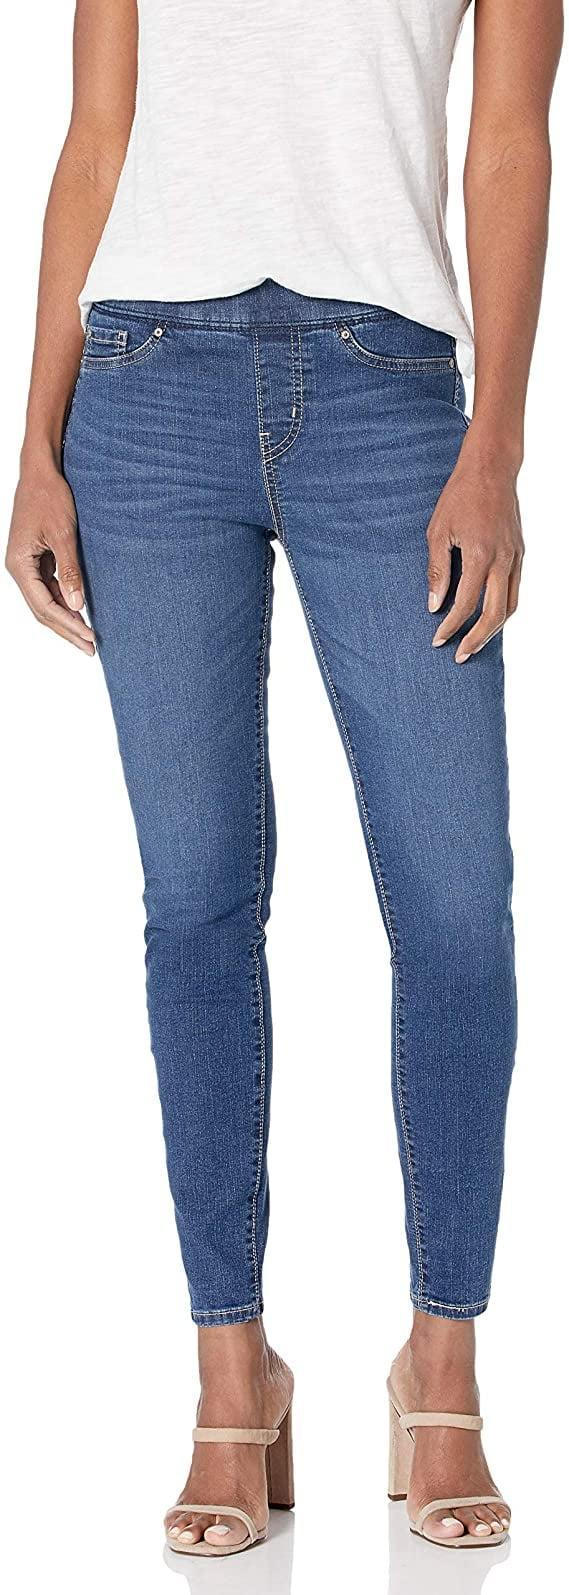 <p><span>Signature by Levi Strauss &amp; Co. Gold Label Totally Shaping Pull-On Skinny Jeans</span> ($26, originally $28)</p>